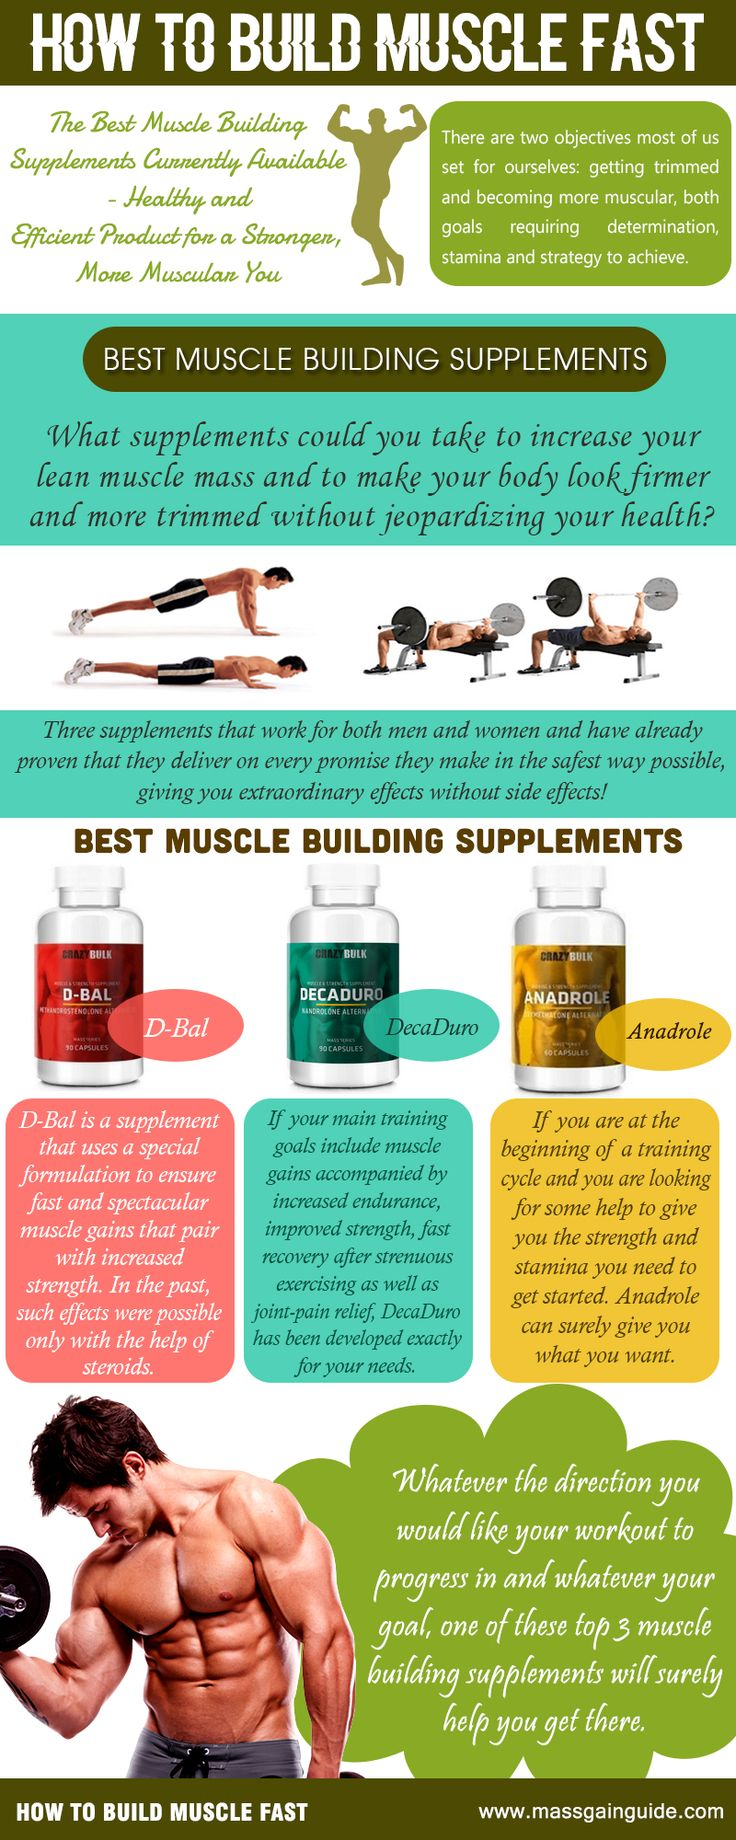 According to research, muscle building helps to improve balance, reduce chances of falling, improve blood sugar levels, and improve mental health and sleep. Furthermore, it helps to burn calories, even after the workout is done. Apart from strength training exercises, many practitioners are incorporating Best Muscle Building Supplements in their fitness program. Supplementation is designed to reduce muscle degeneration to allow for greater muscle growth, as well as improve muscle recovery.